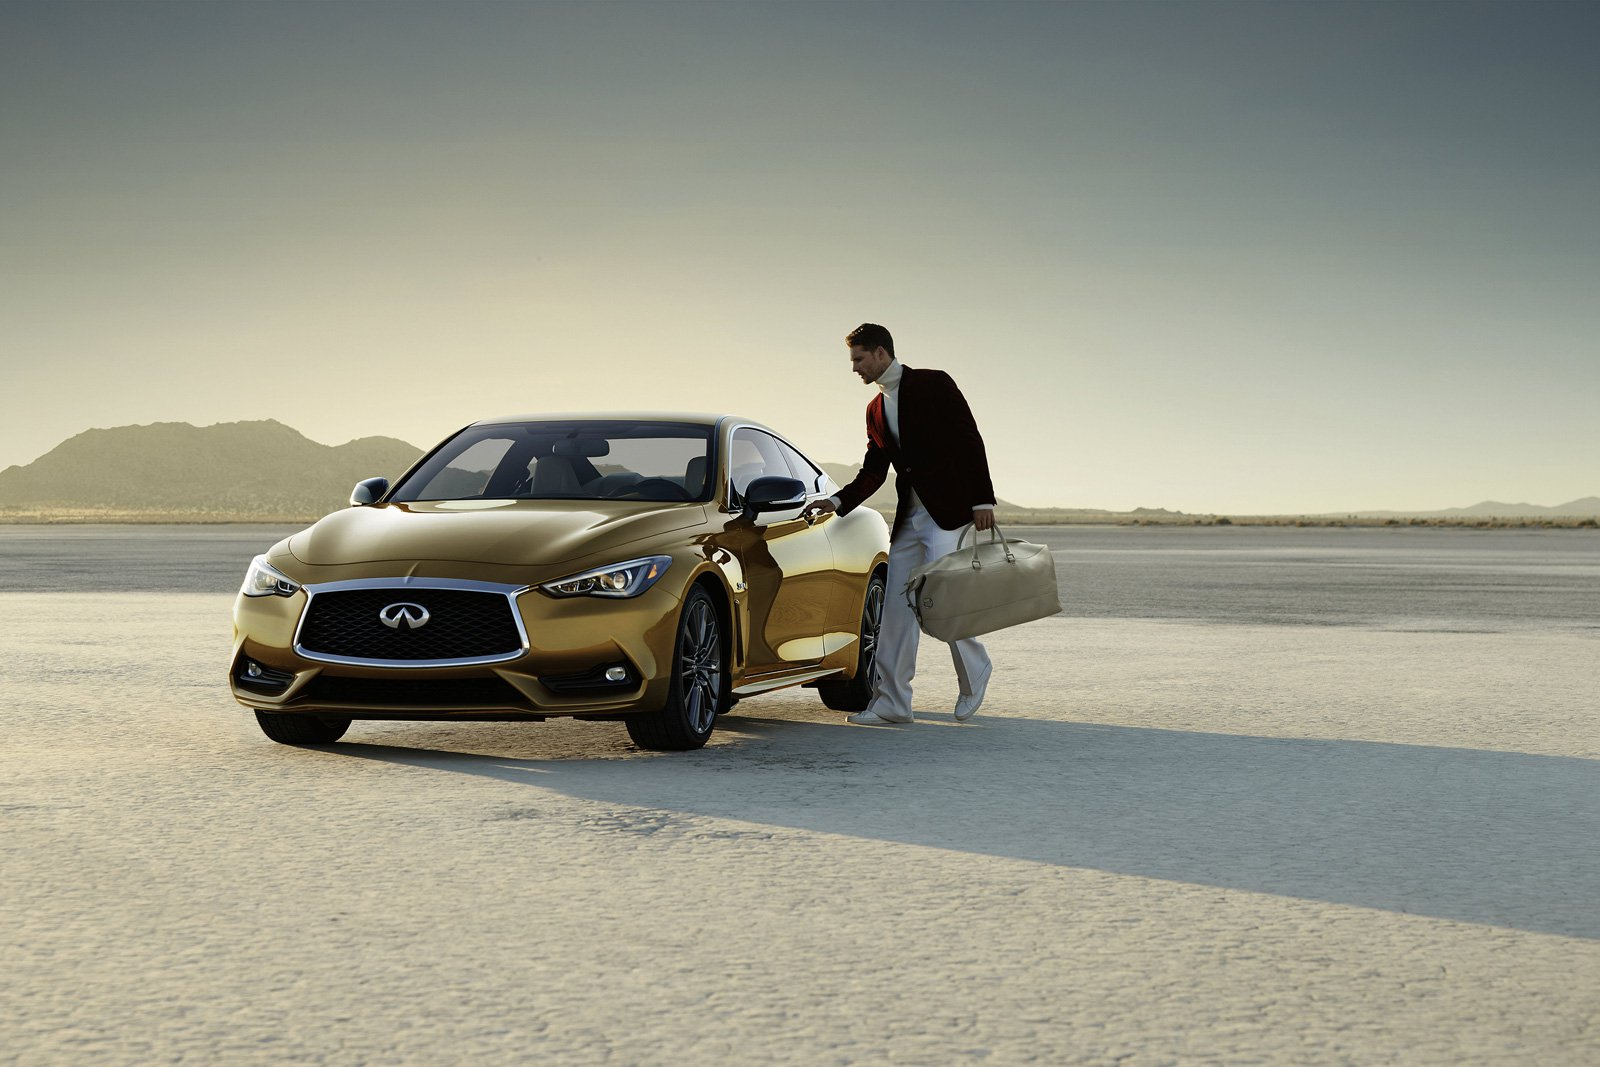 infiniti-q60-neiman-marcus-limited-edition-02